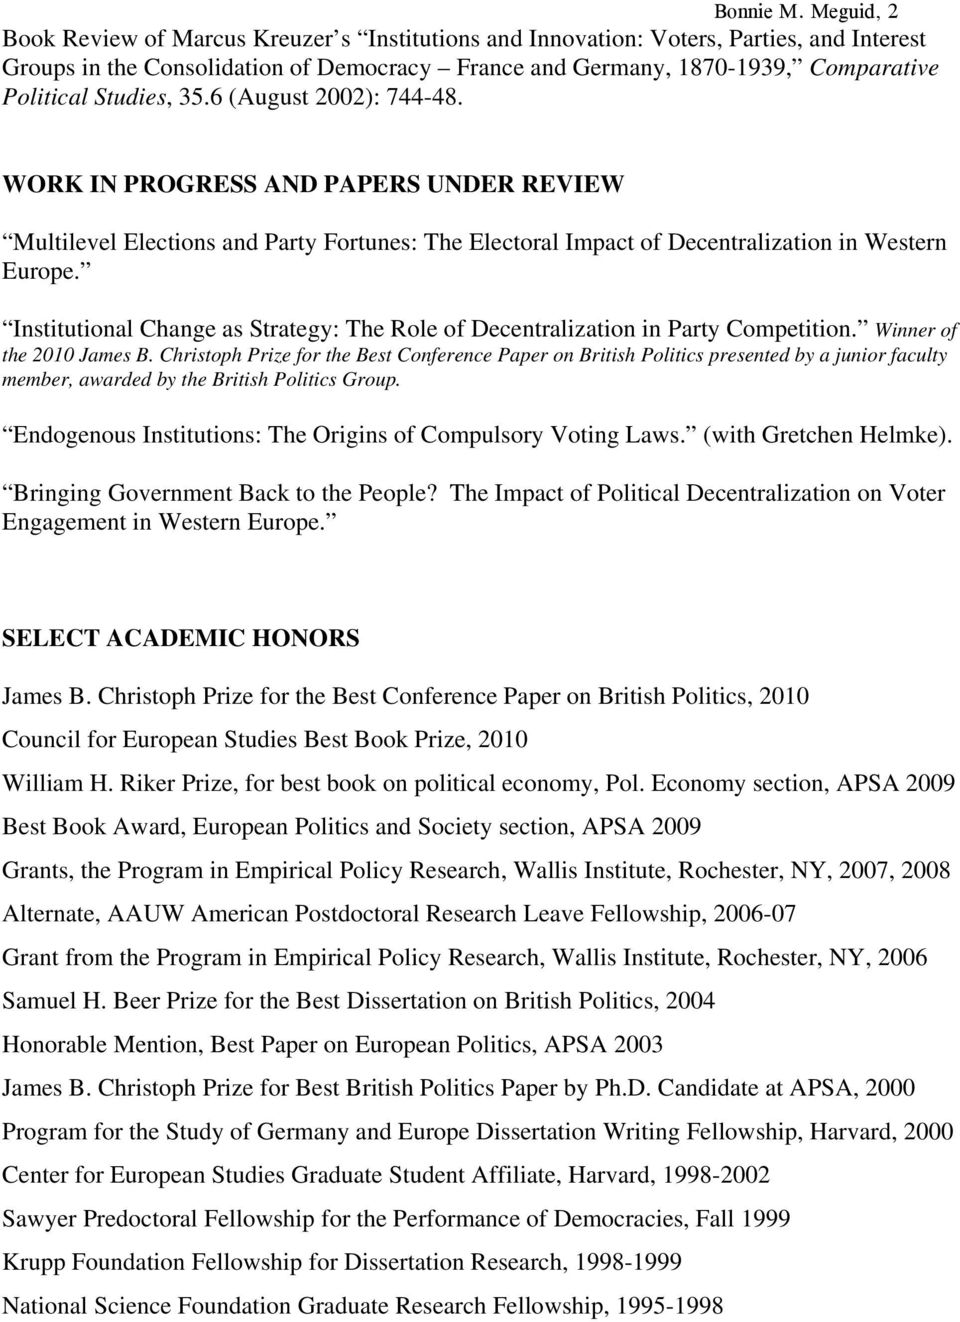 Studies, 35.6 (August 2002): 744-48. WORK IN PROGRESS AND PAPERS UNDER REVIEW Multilevel Elections and Party Fortunes: The Electoral Impact of Decentralization in Western Europe.